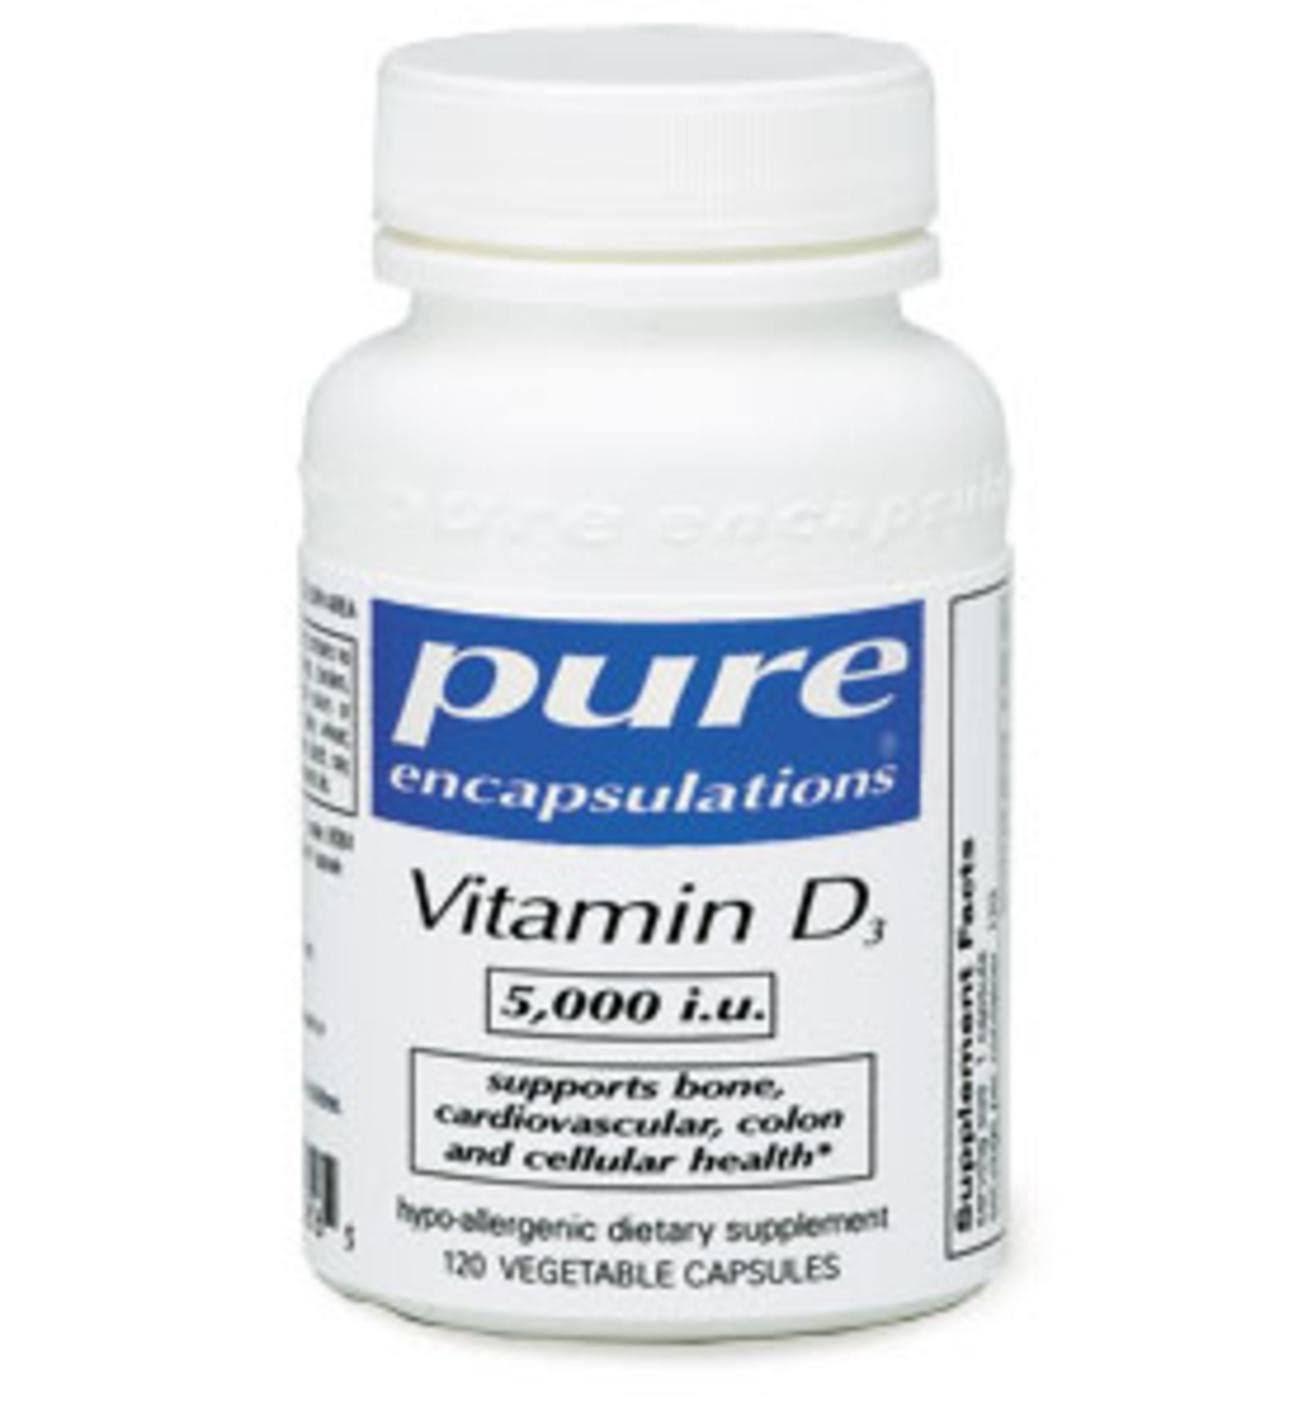 Pure Encapsulations Vitamin D3 5,000 IU Vegetable Capsules - x120